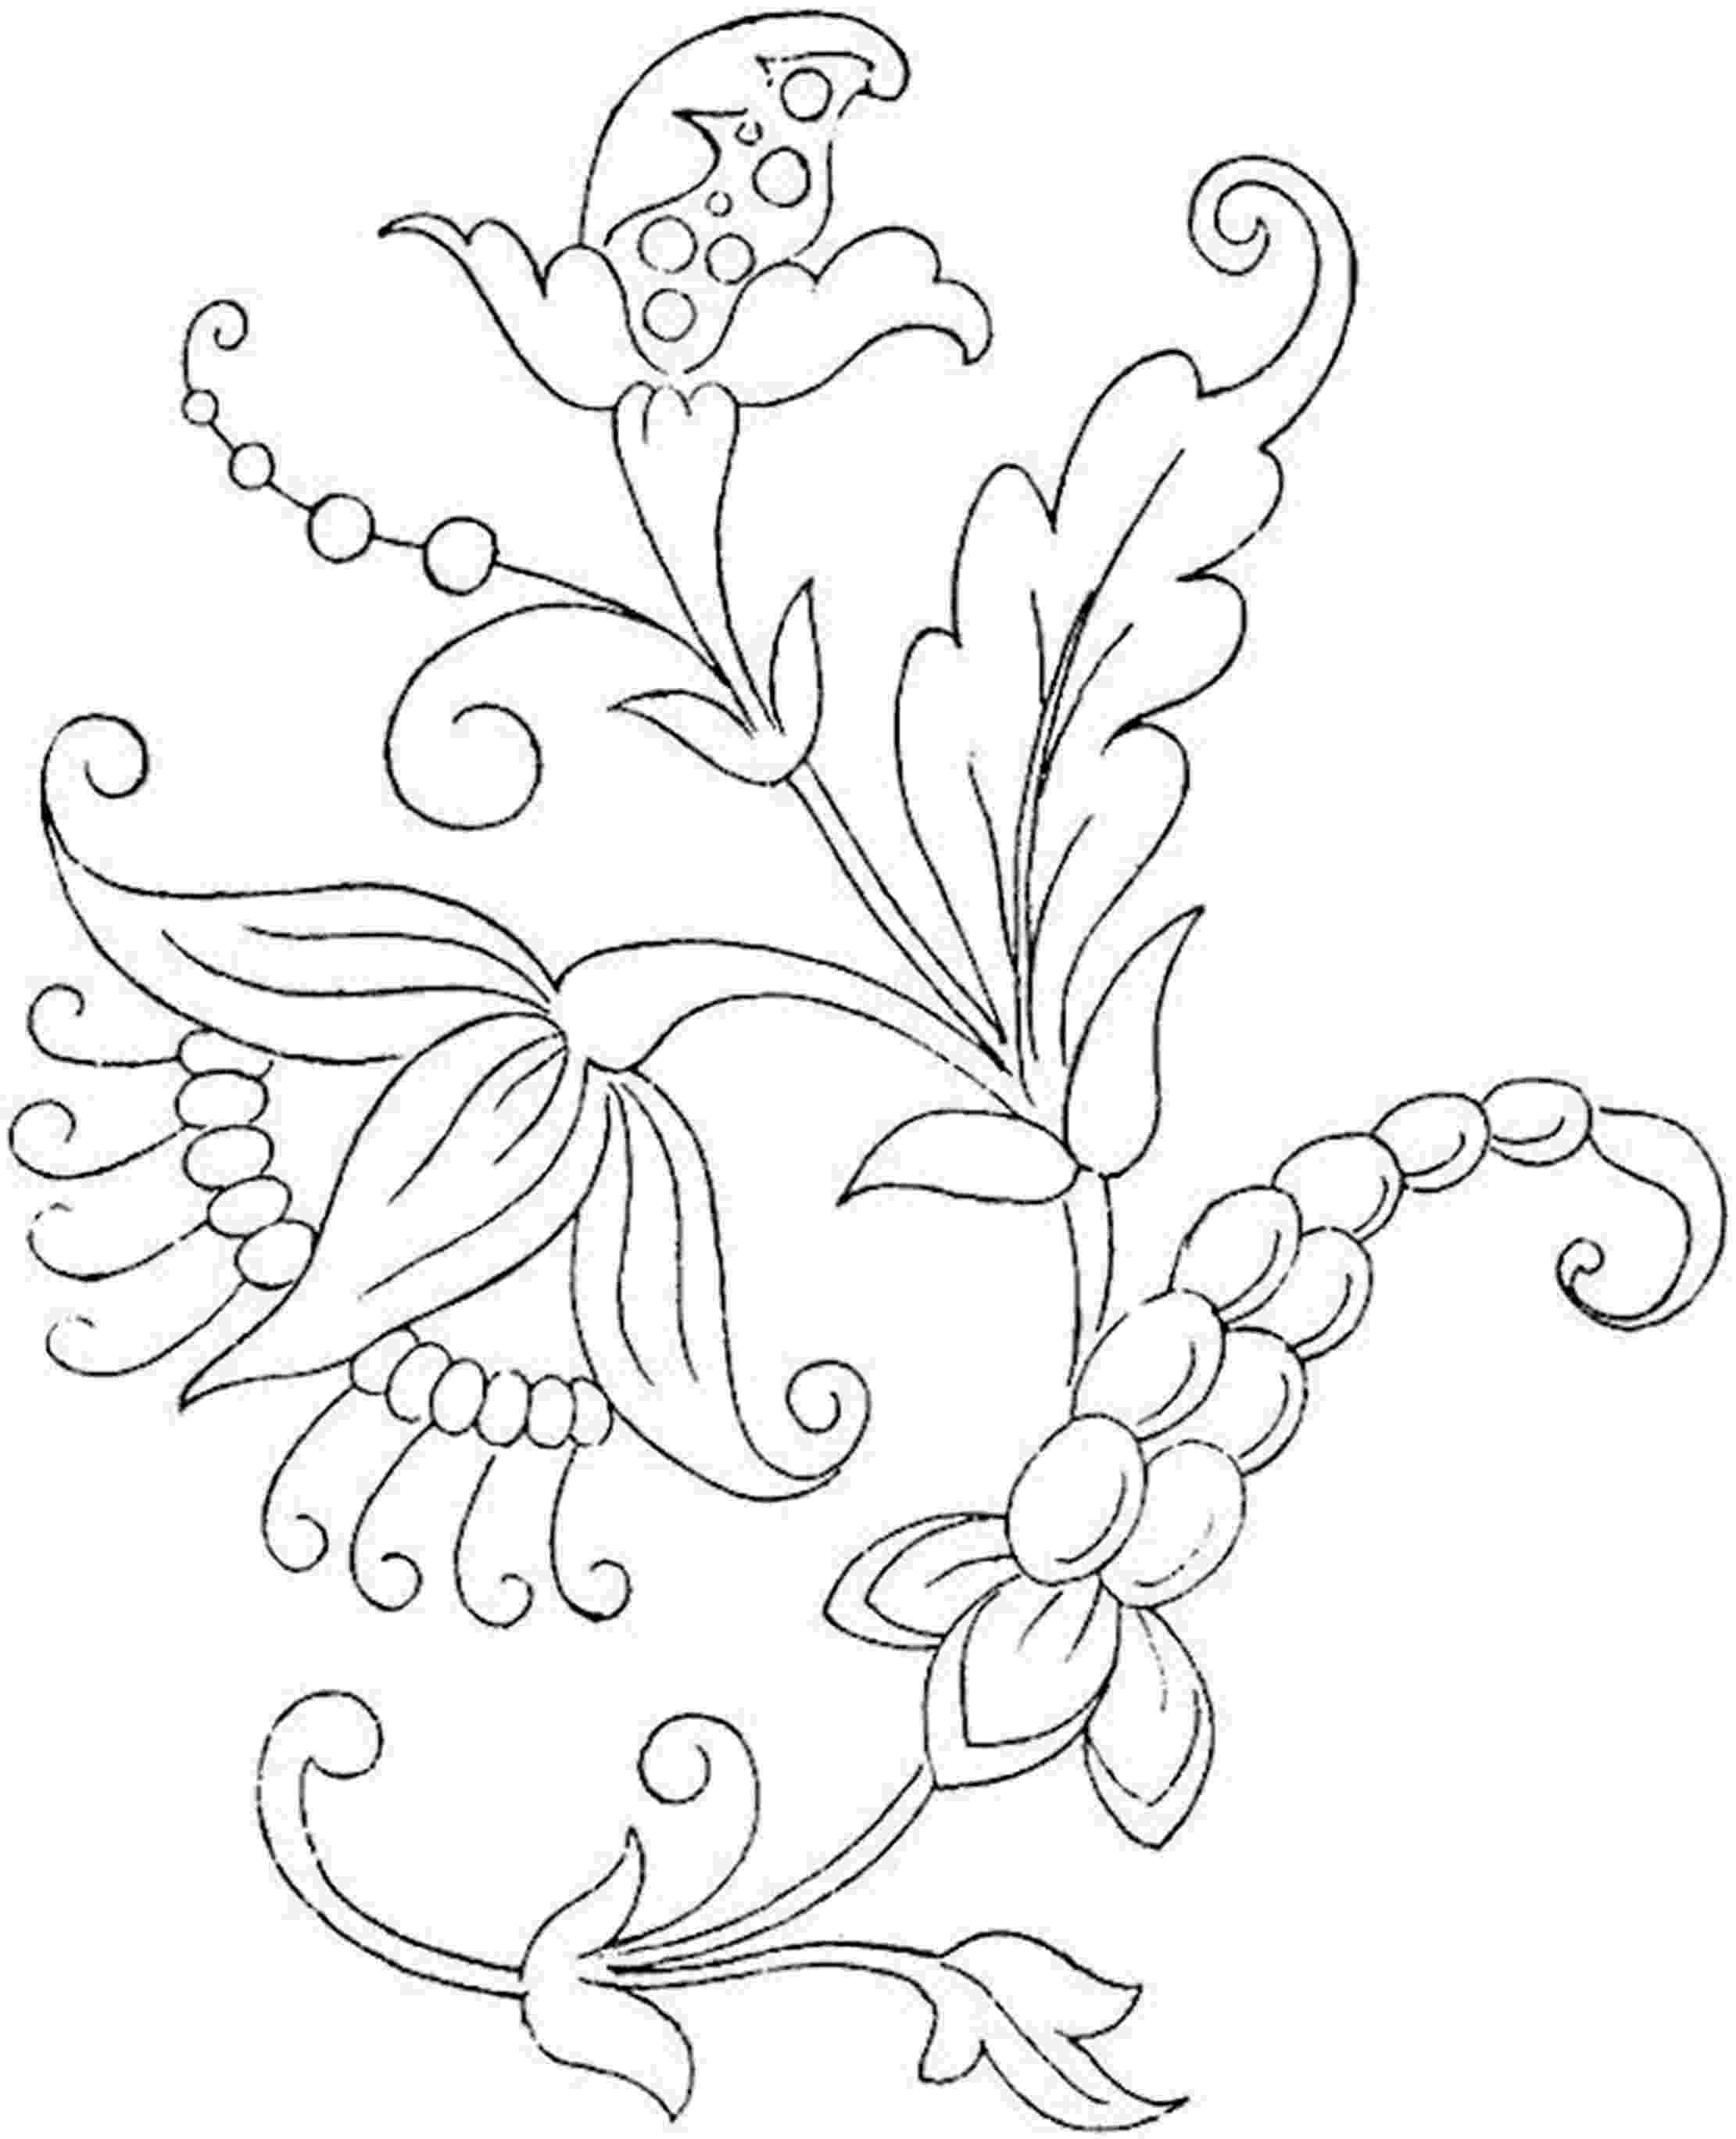 flower coloring sheets for kids free printable flower coloring pages for kids best sheets coloring flower kids for